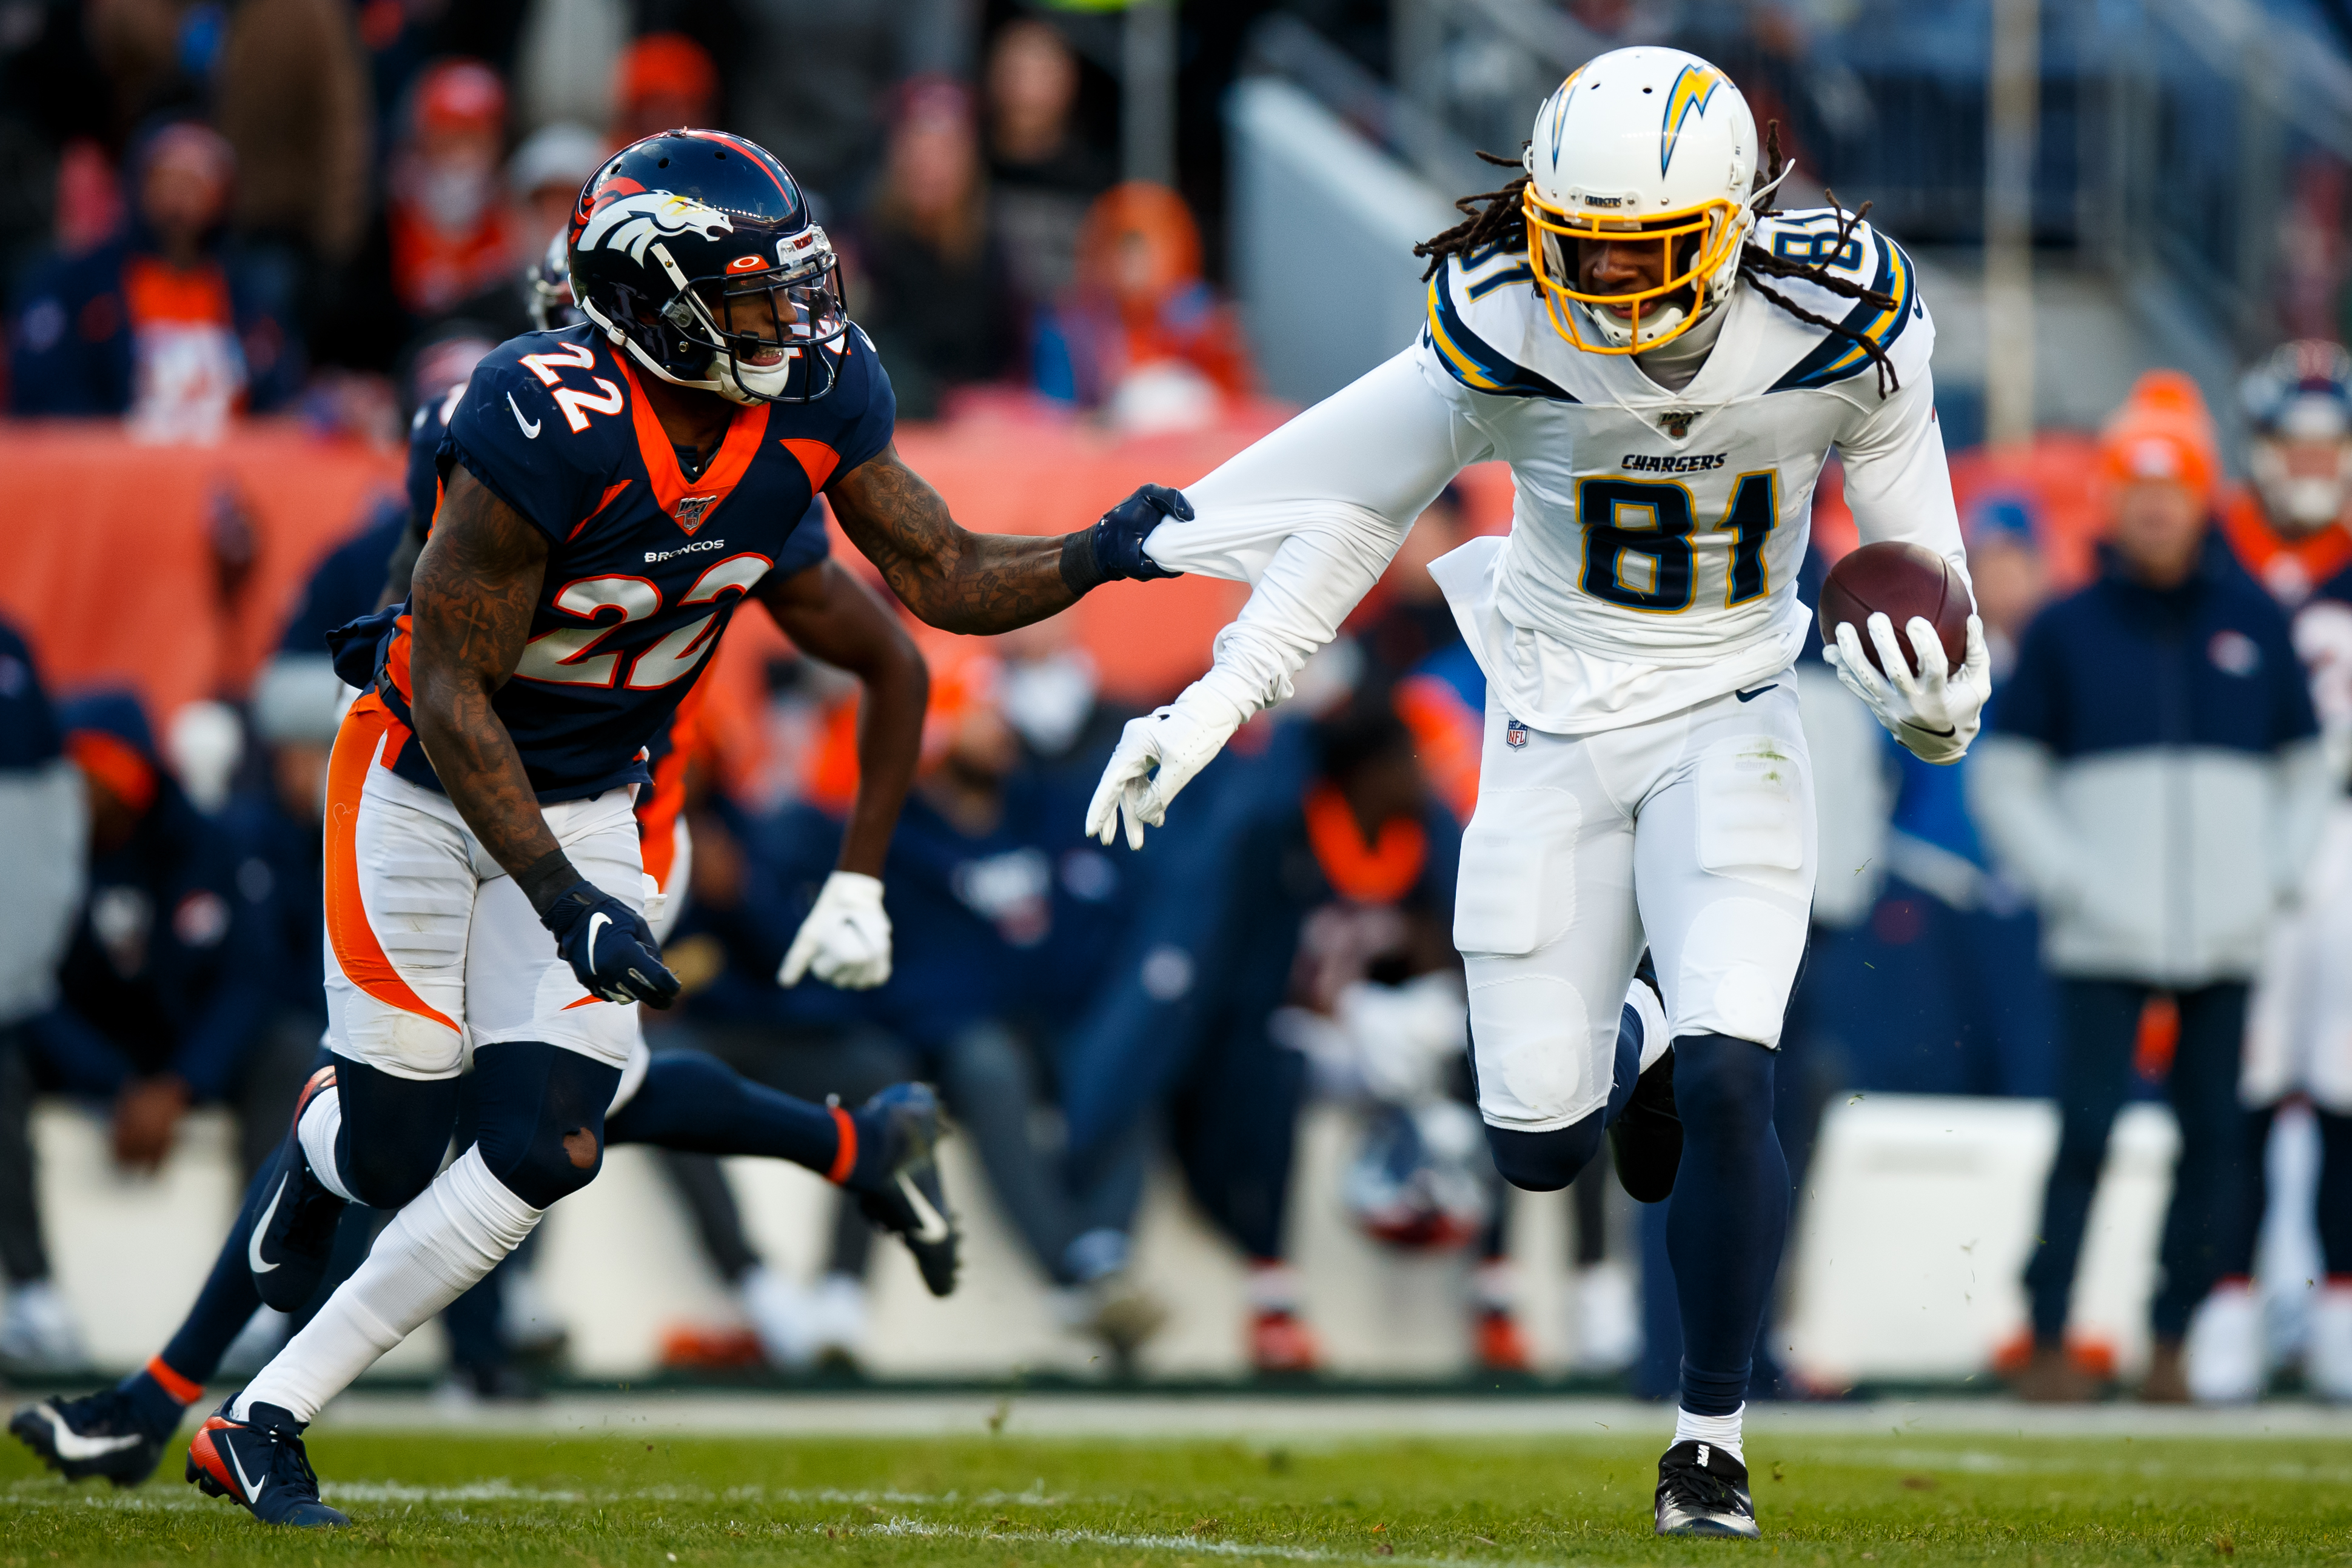 Wide receiver Mike Williams #81 of the Los Angeles Chargers tries to elude cornerback Kareem Jackson #22 of the Denver Broncos after catching a pass during the second quarter at Empower Field at Mile High on December 1, 2019 in Denver, Colorado.